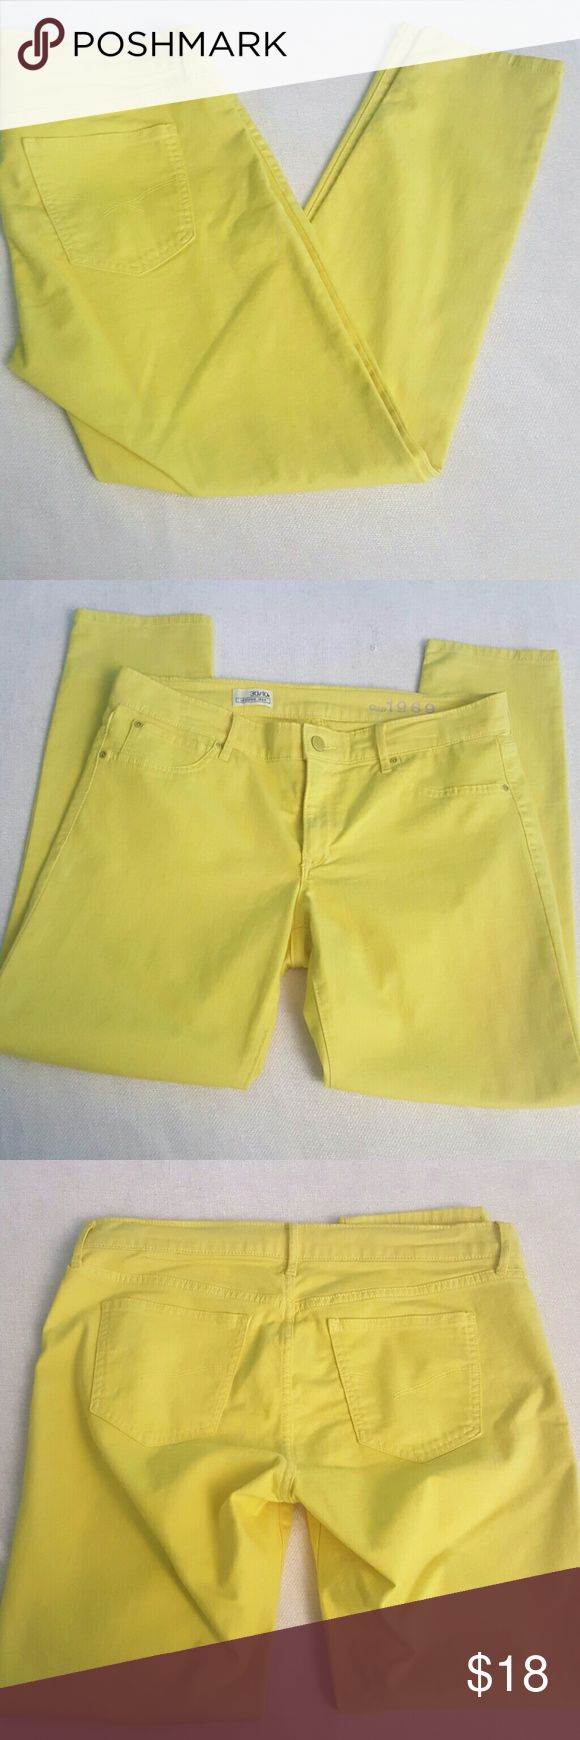 Gap EUC Sz 10r Yellow Legging Jean Ready to give your outfit a pop of color! GAP Pants